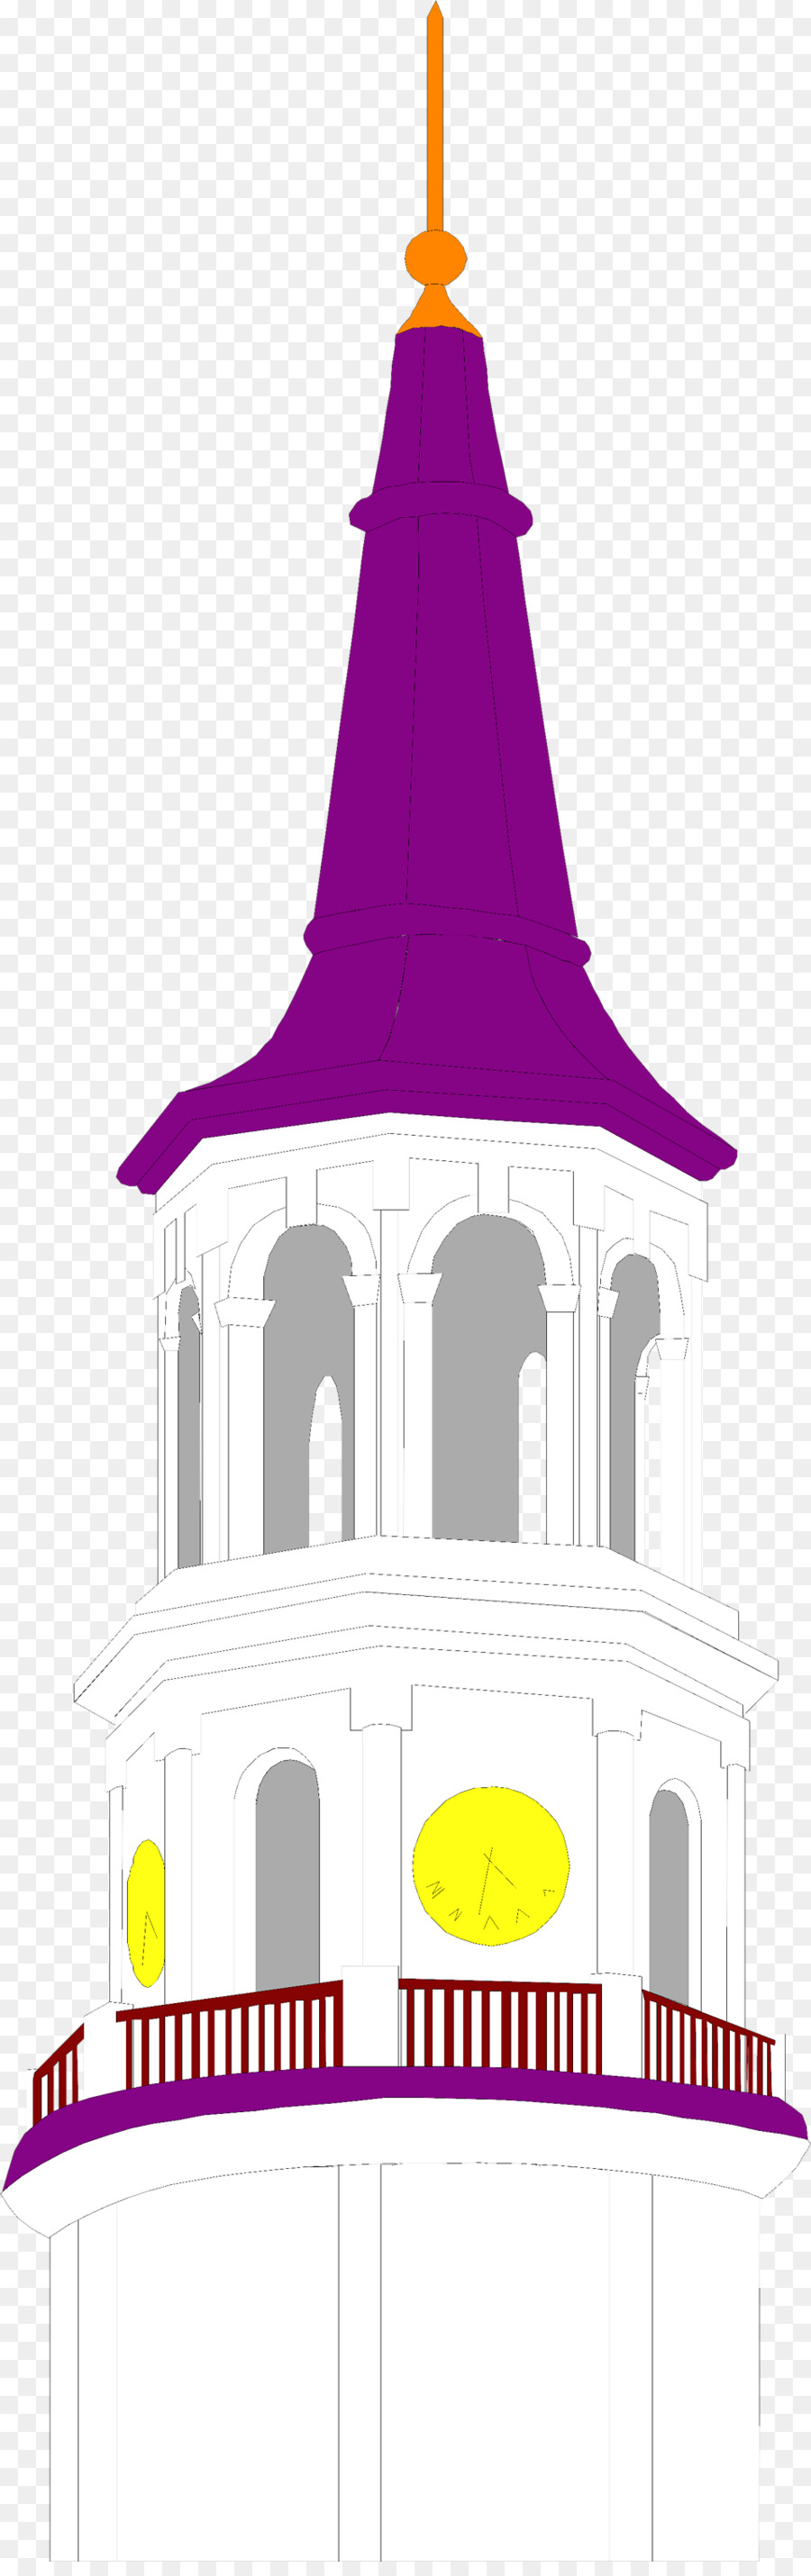 Town council Building Clip art - Council Cliparts - Town Council Building PNG